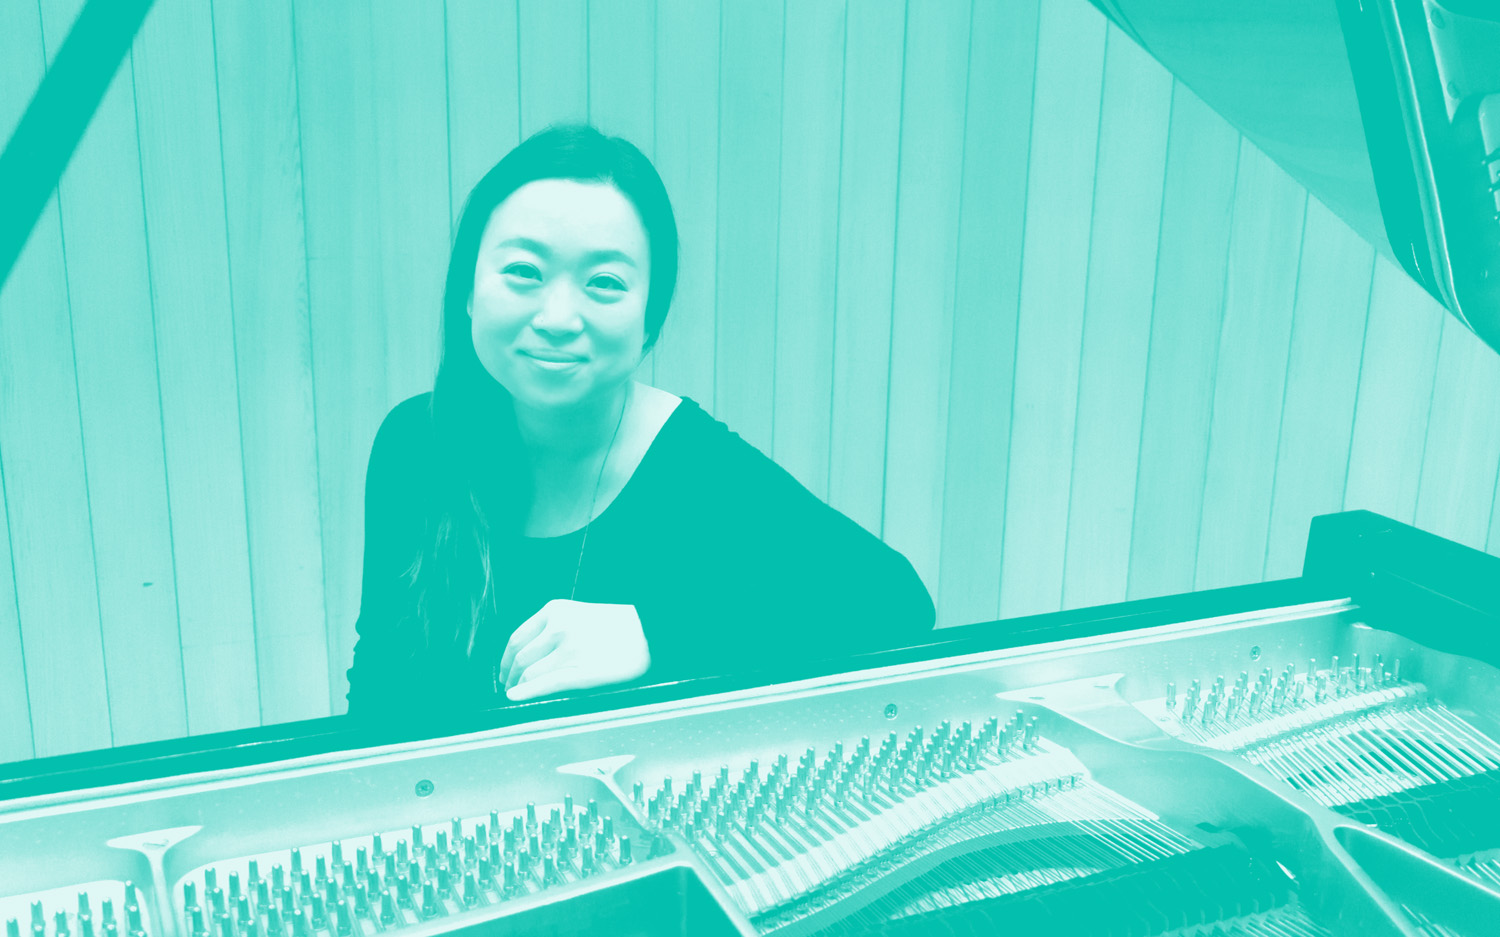 "<a href=""/bios/shinae-kim"">Shinae Kim<br>piano</a>"